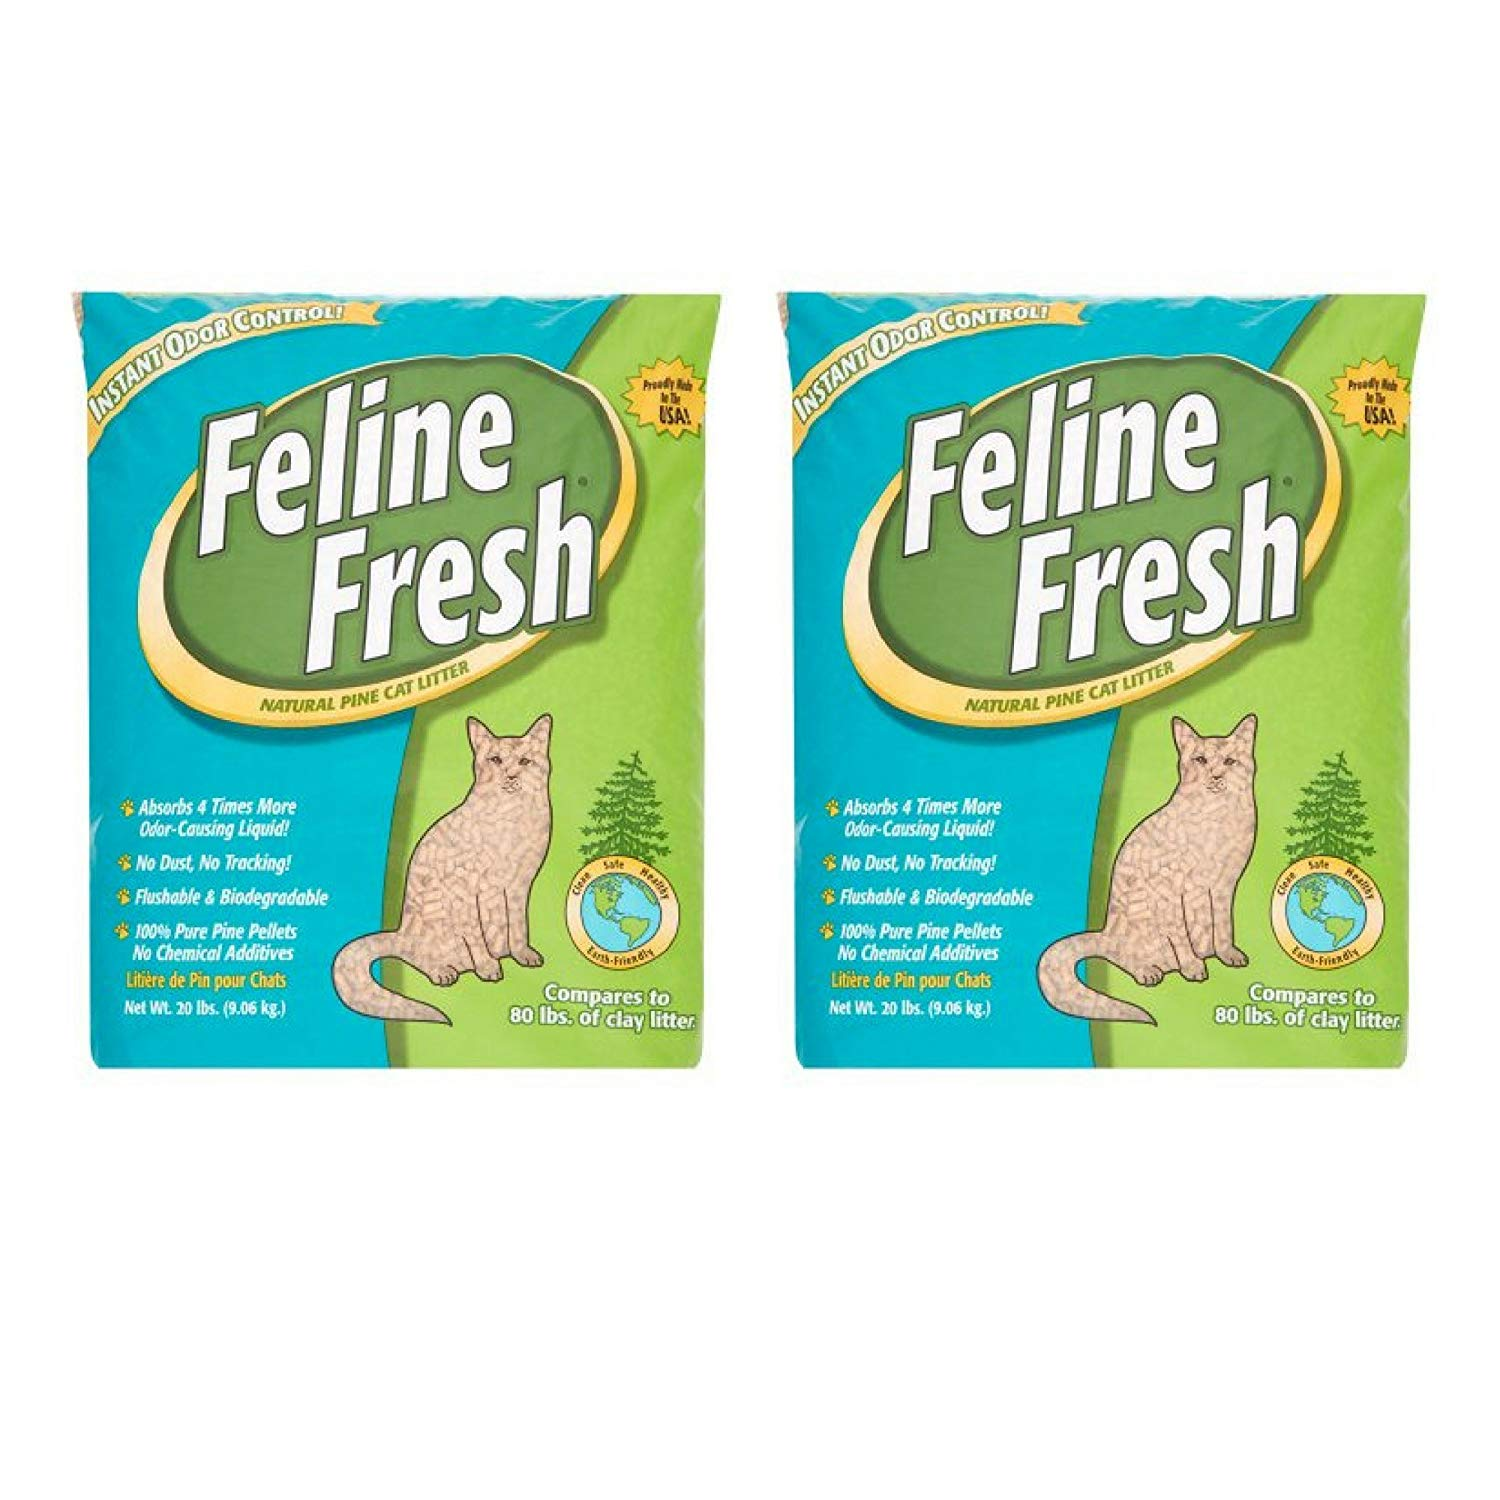 Feline Fresh Natural Pine Pellets, 40-lbs